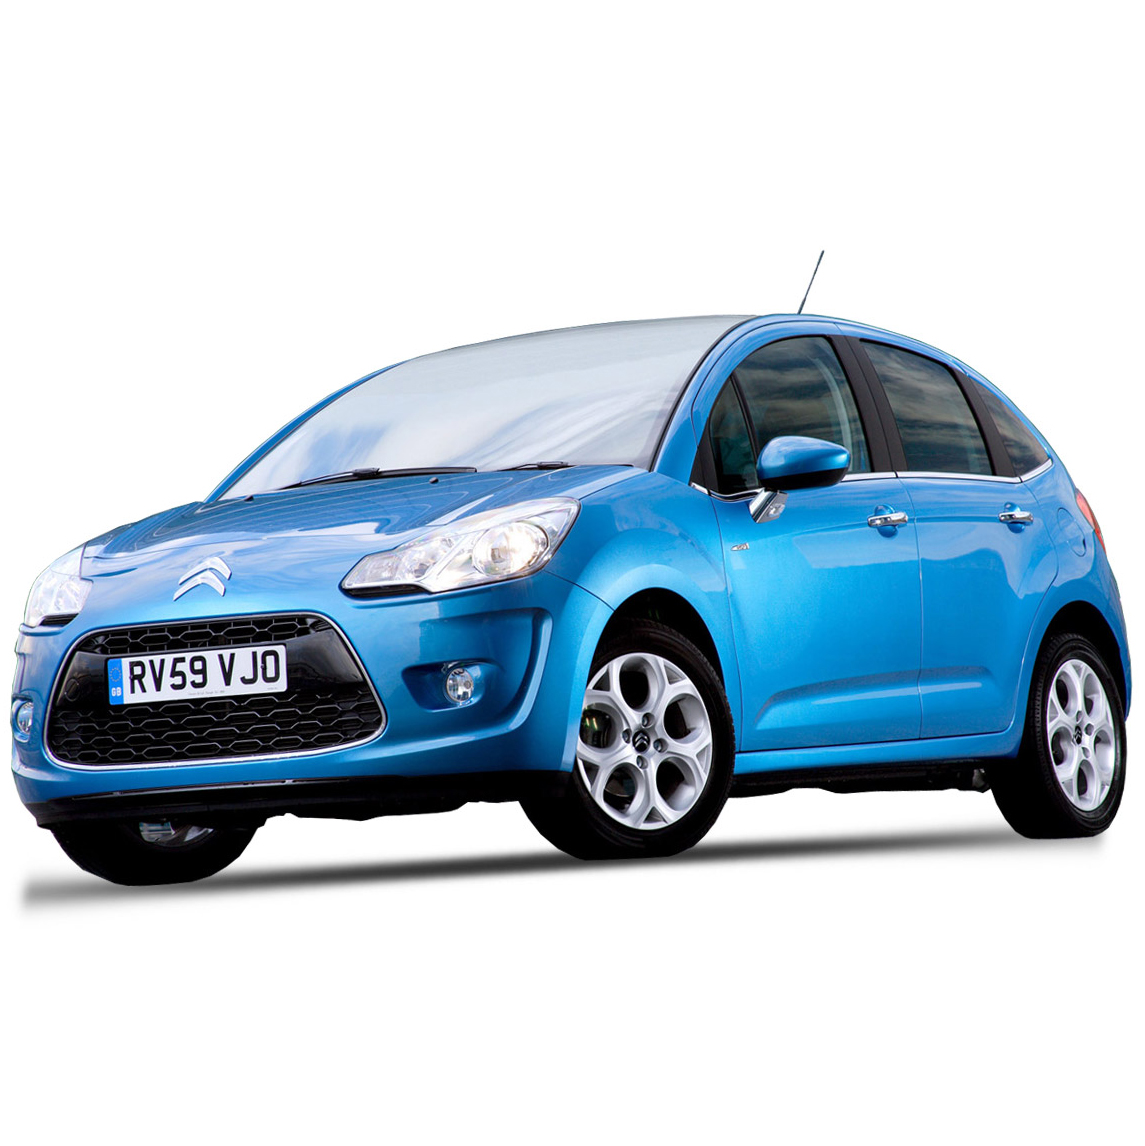 Citroen C3 2nd gen & DS3 2009 - 2016